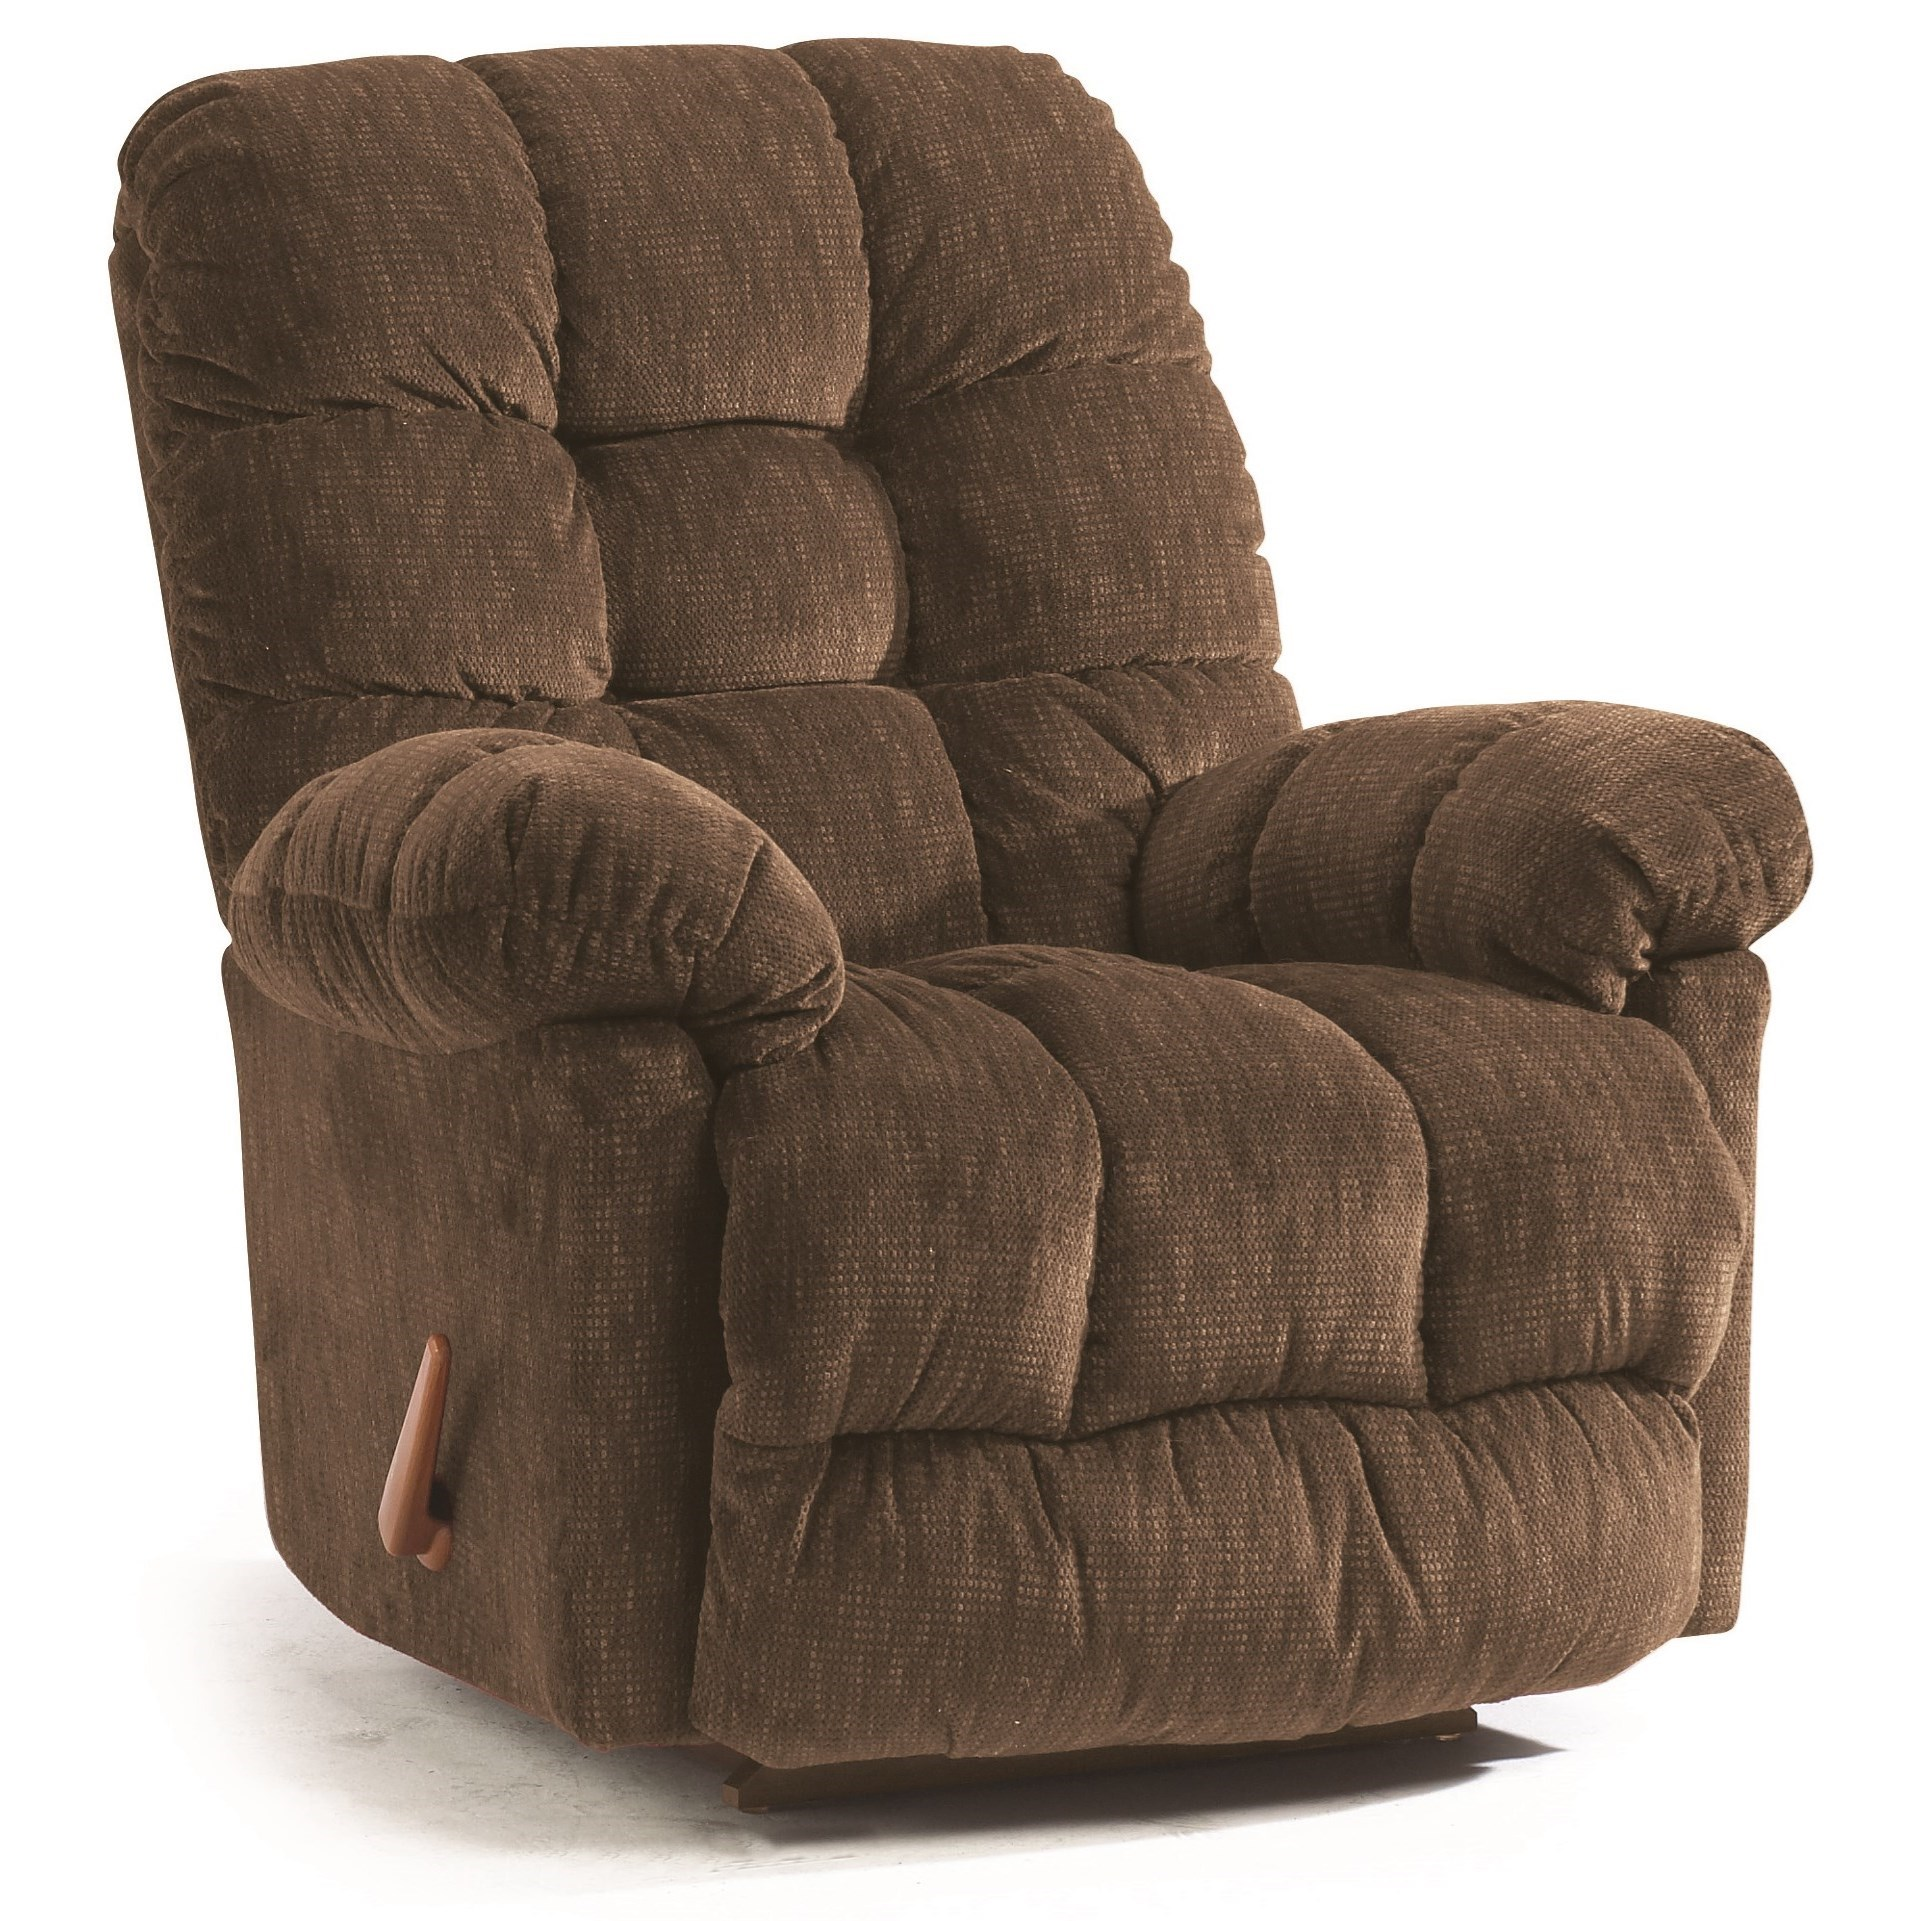 Swivel Rocker Recliner Chair Medium Recliners Brosmer Swivel Rocking Reclining Chair By Best Home Furnishings At Rife S Home Furniture